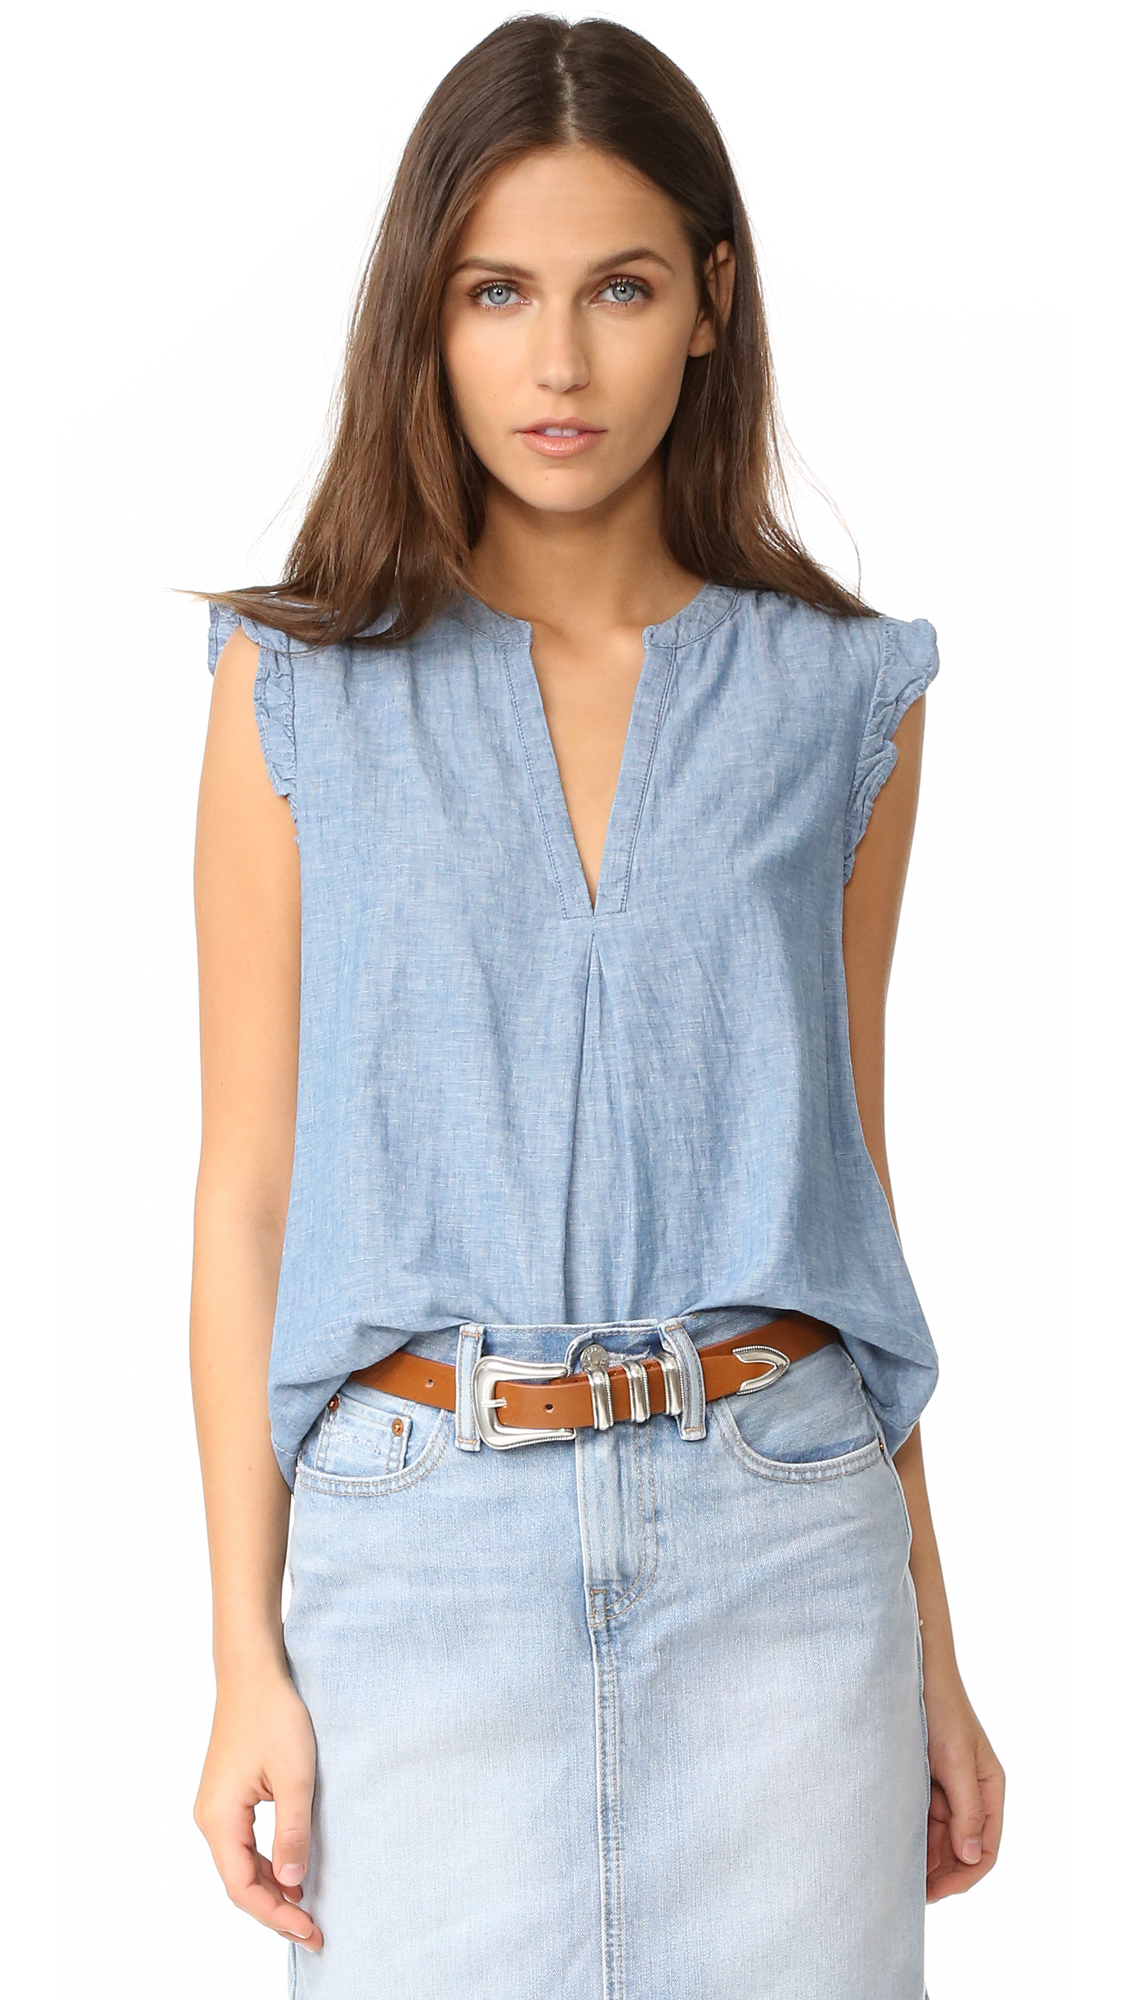 Joie Blaine Blouse - Chambray at Shopbop